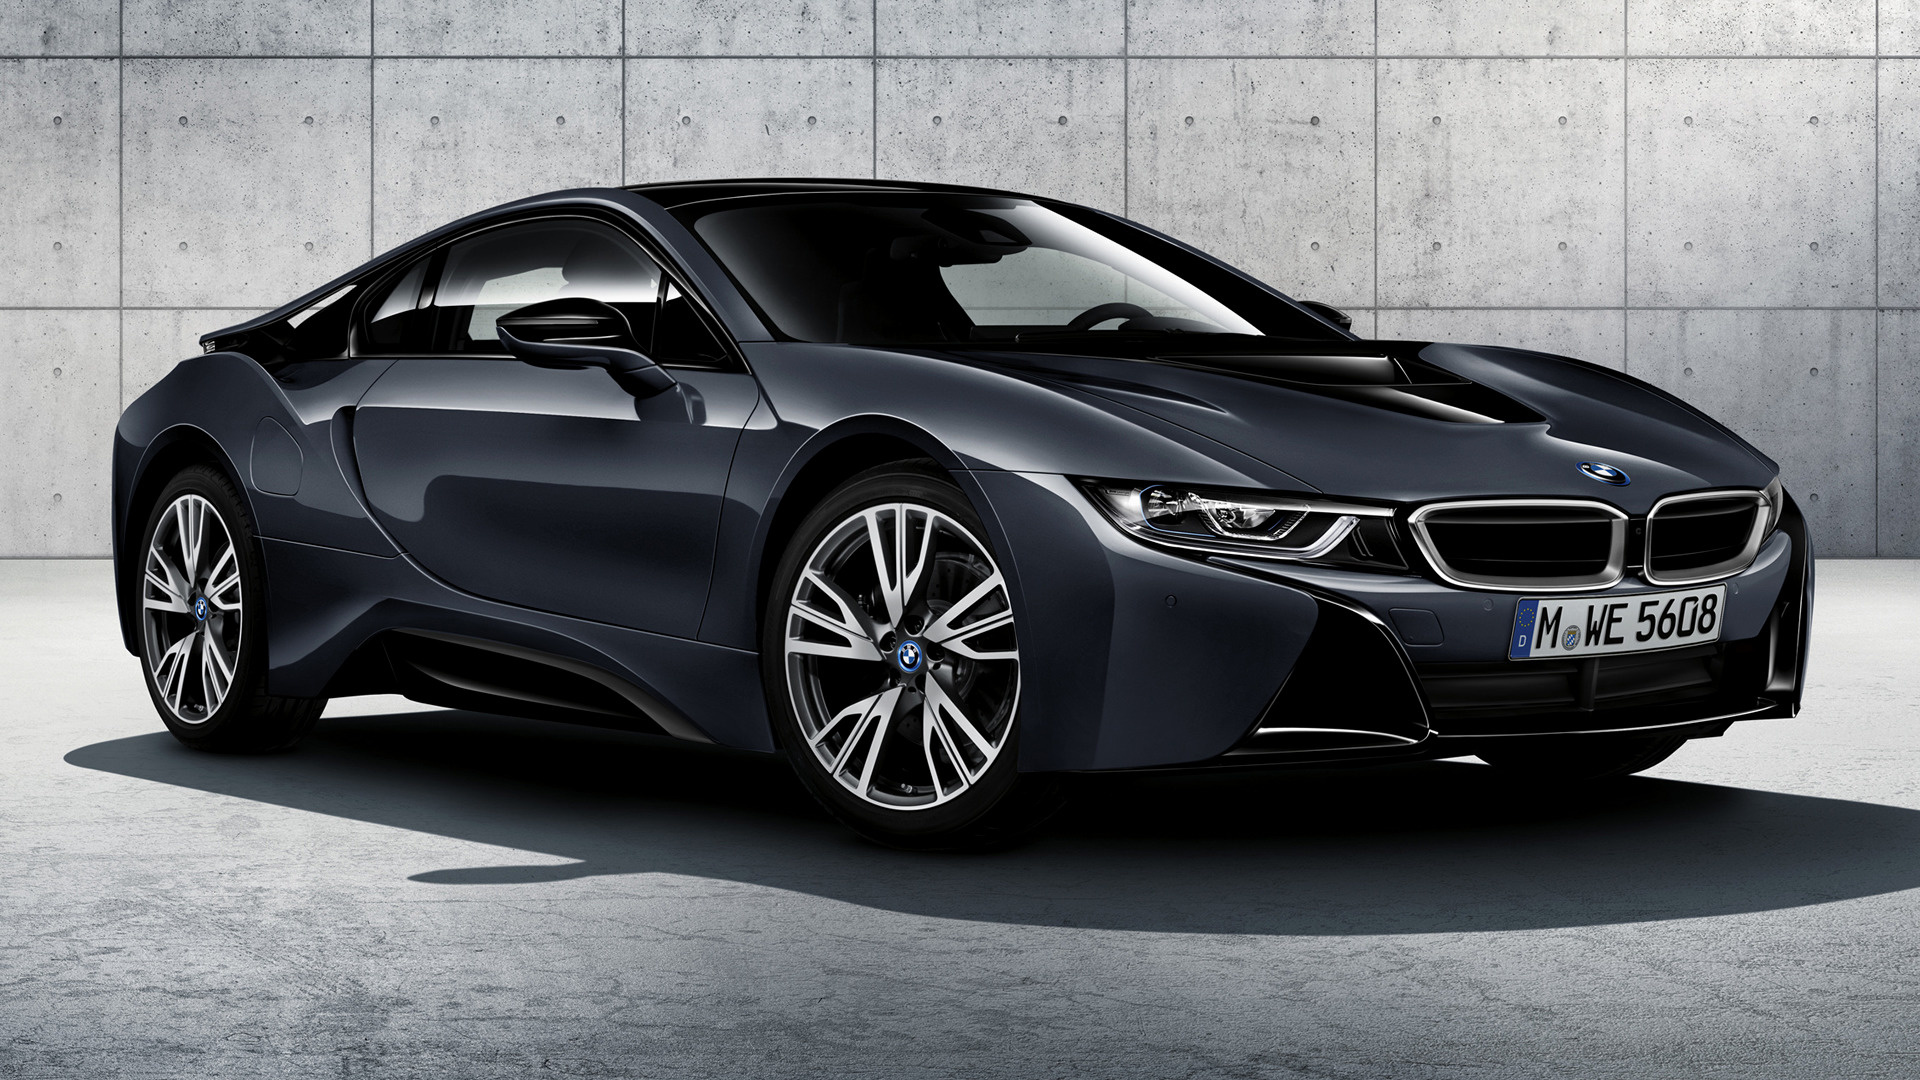 bmw i8 protonic dark silver edition 2016 wallpapers and